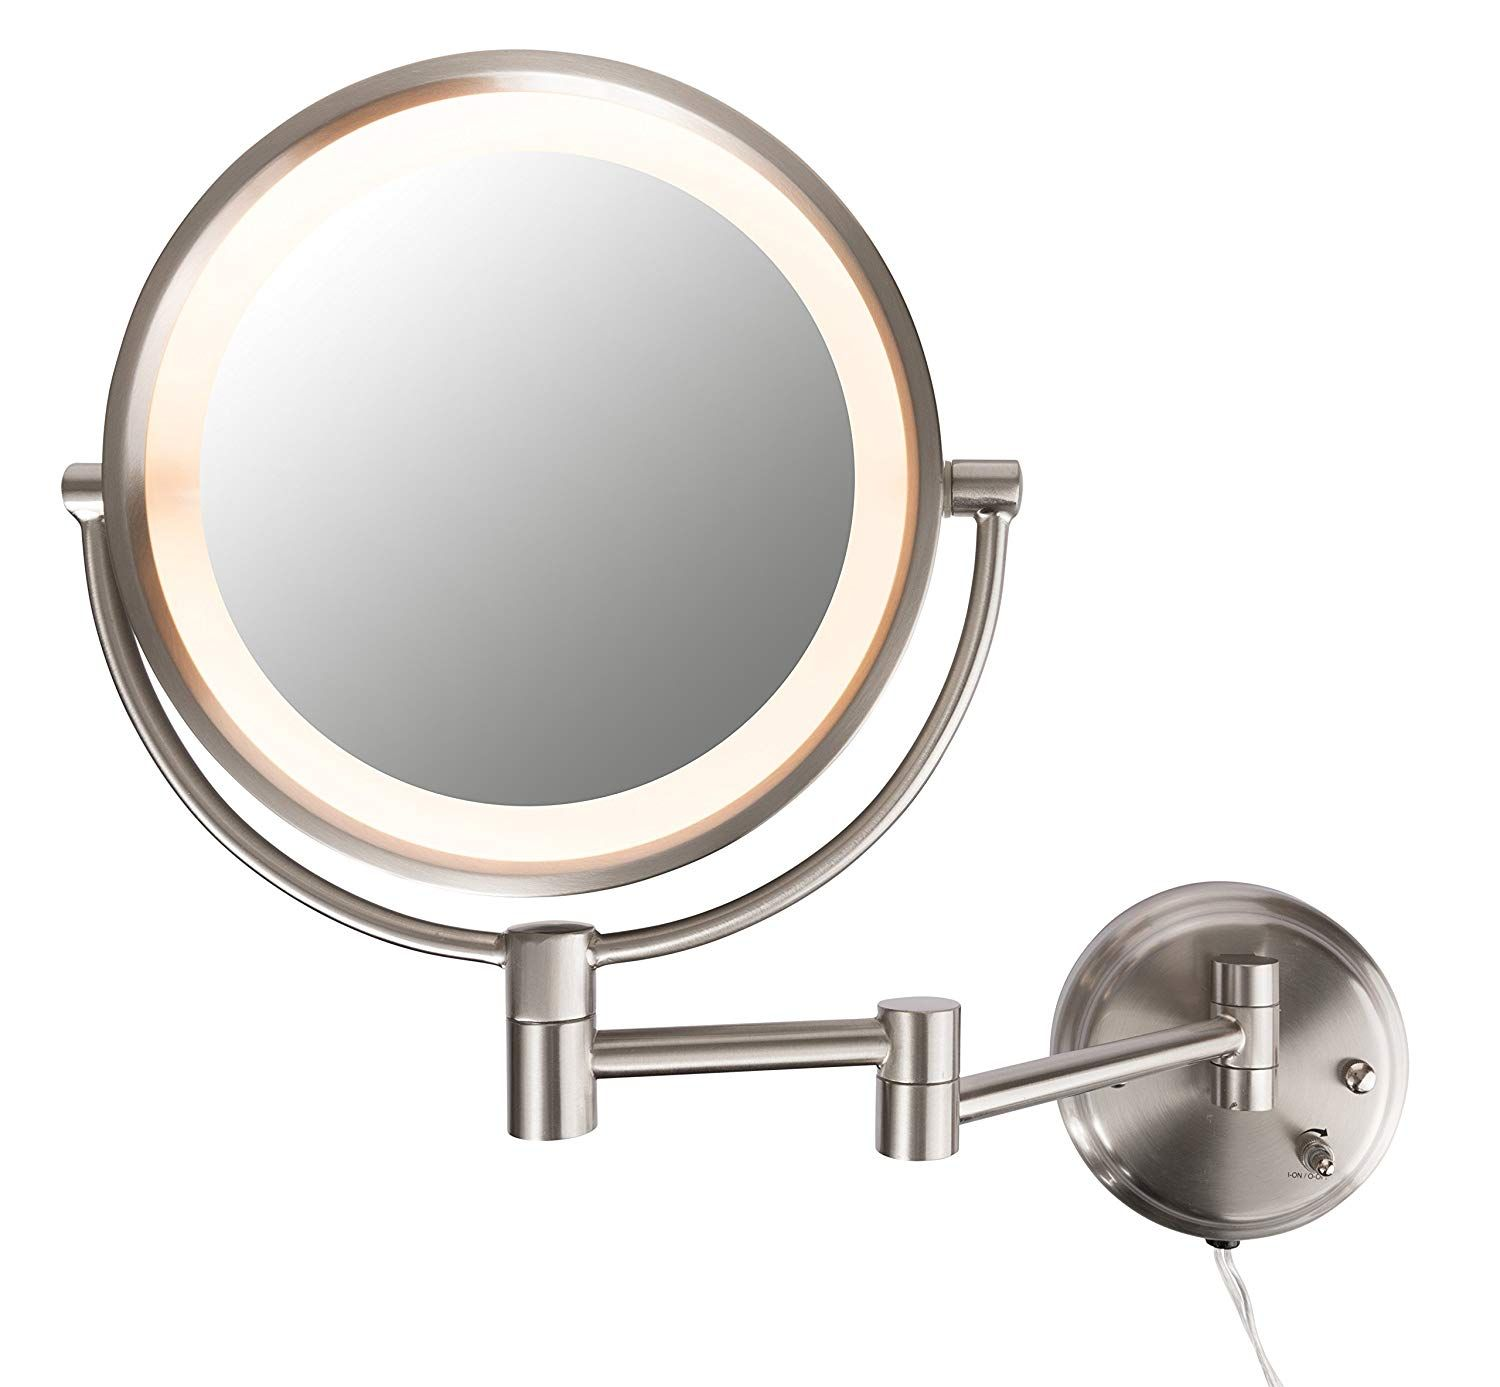 Conair Be6bx Double Sided Lighted 8x Magnification Fog Free Wall Mount Wall Mounted Lighted Makeup Mirror Wall Mounted Makeup Mirror Makeup Mirror With Lights